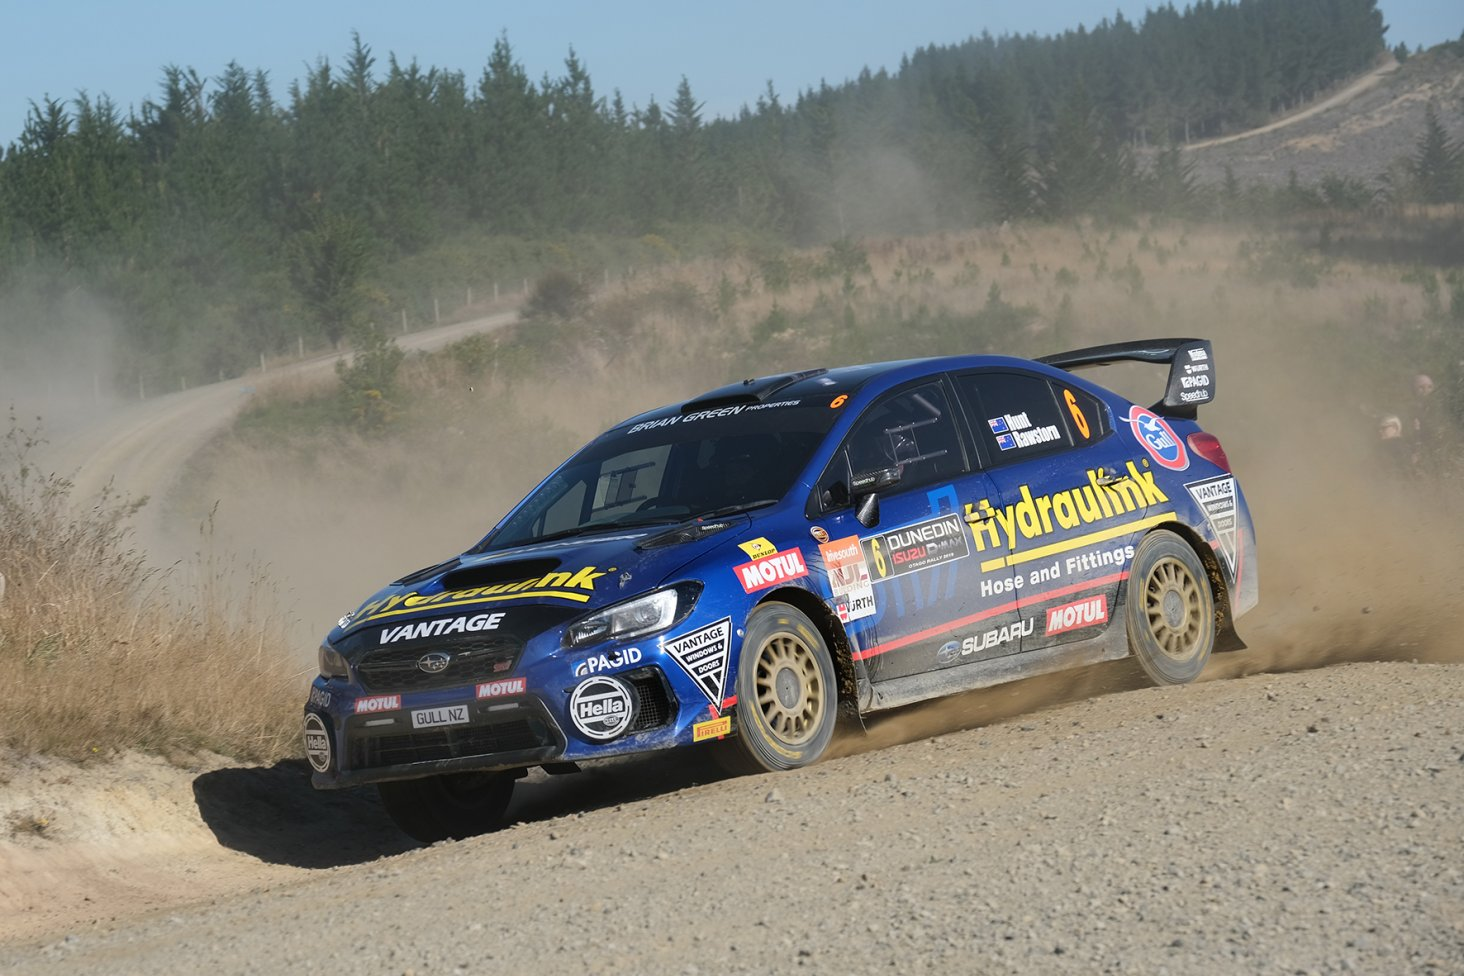 Ben Hunt and Tony Rawstorn in the Subaru WRX STI on their way to winning the NZRC section of the Drivesouth Rally of Otago. Photo: Geoff Ridder.